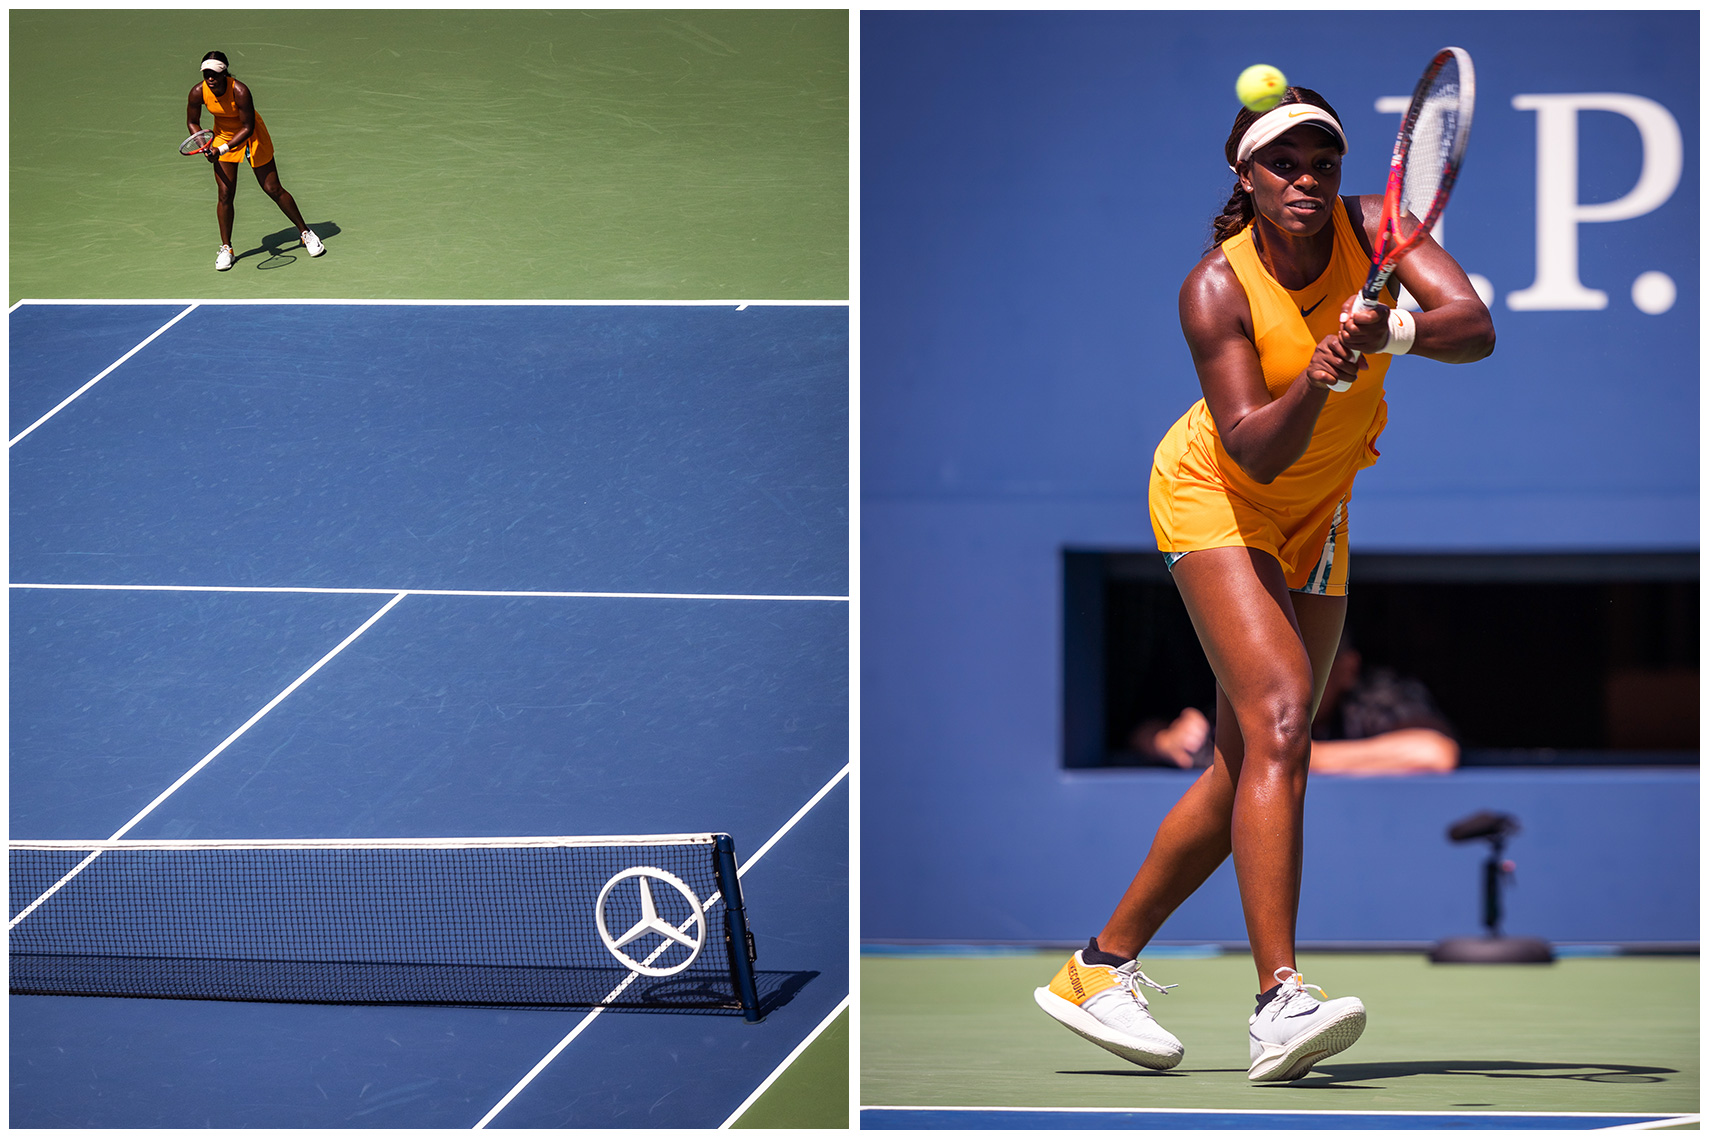 sloane-stephens-action-d-us-open-tennis-mercedes-benz-ambassador